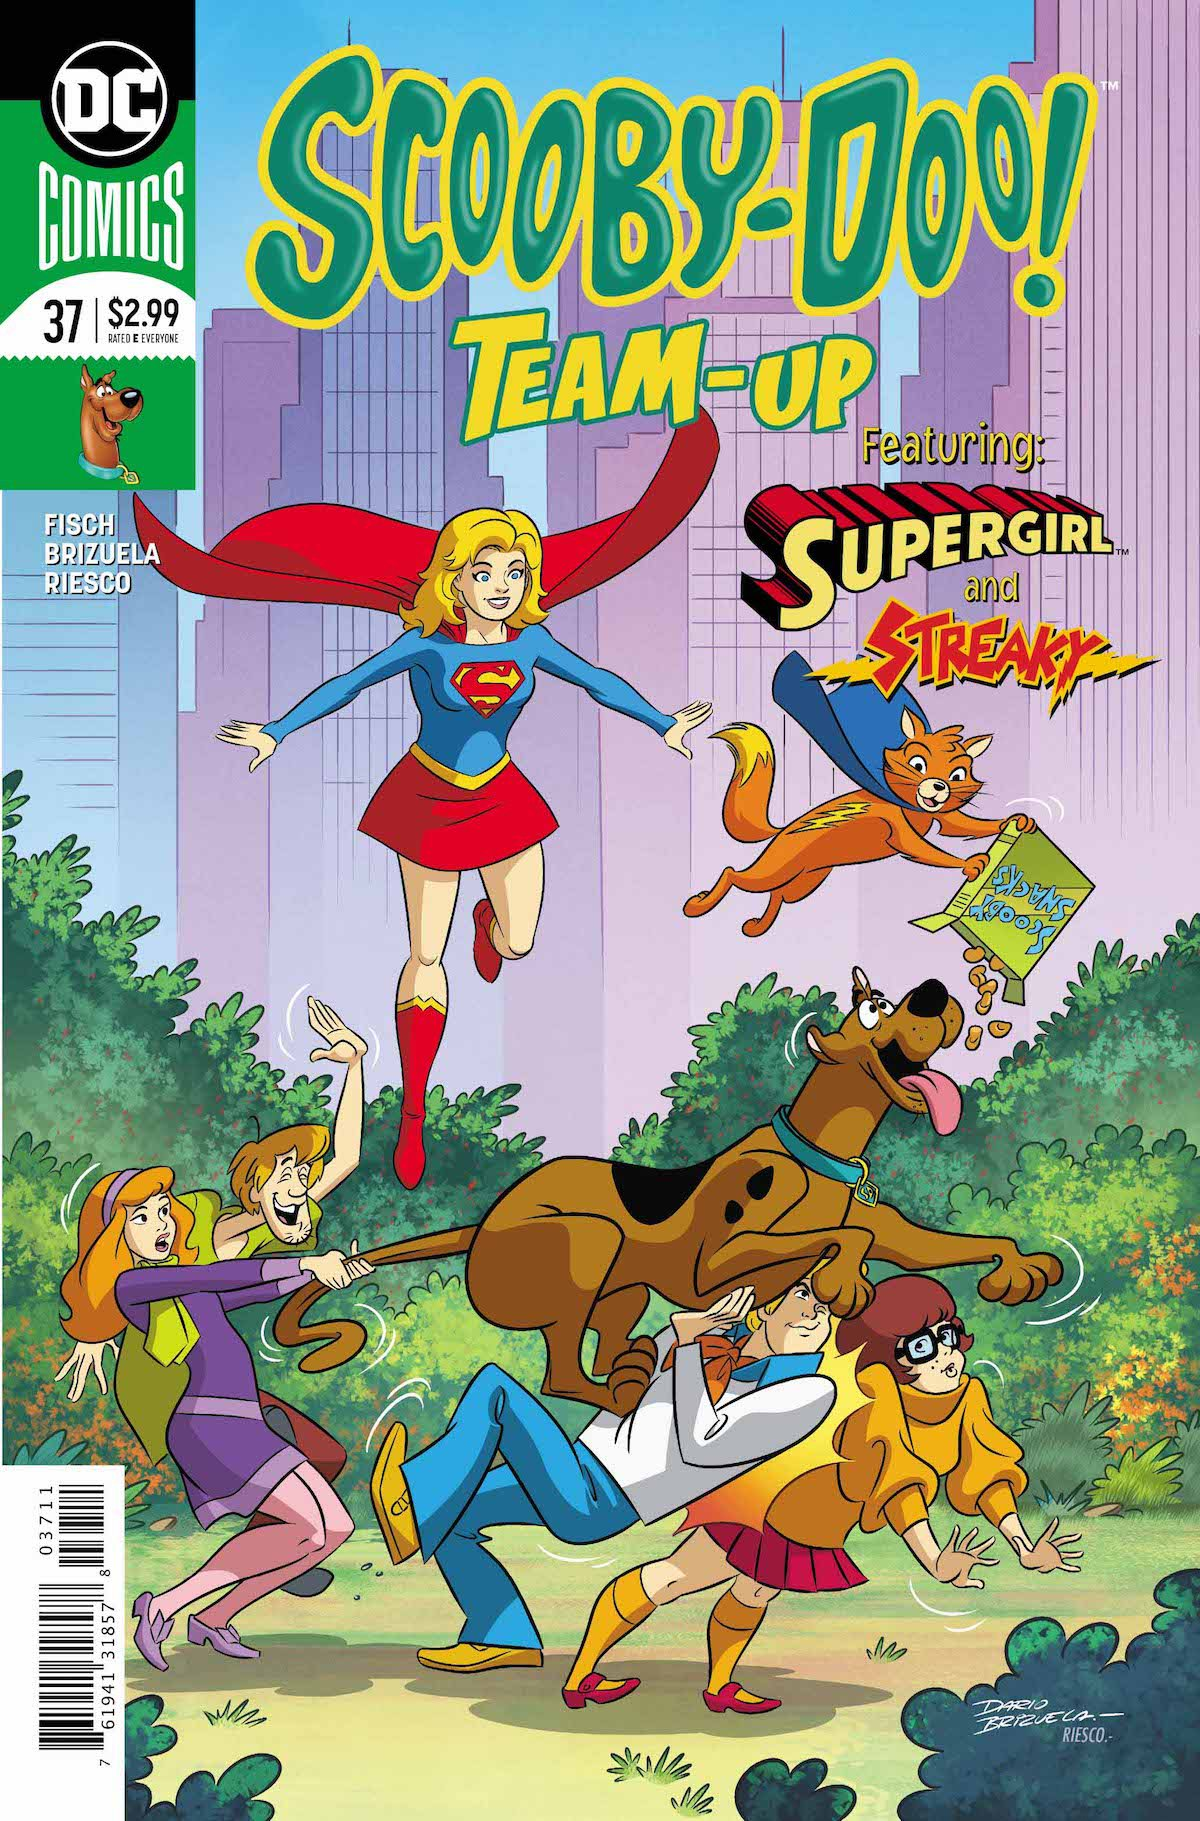 Scooby Doo Team Up #37 Supergirl